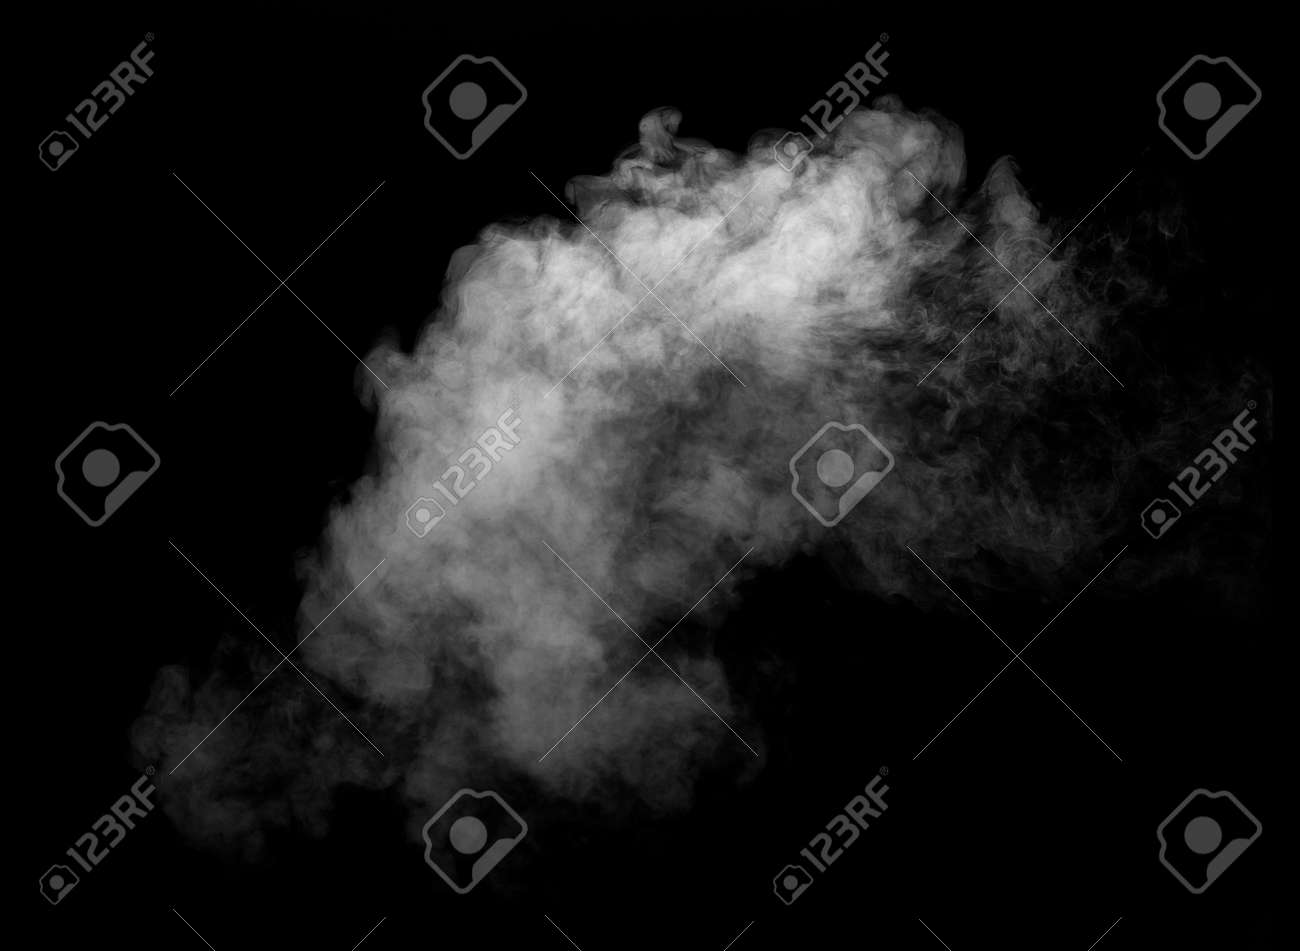 close up of steam smoke on black background - 121359884